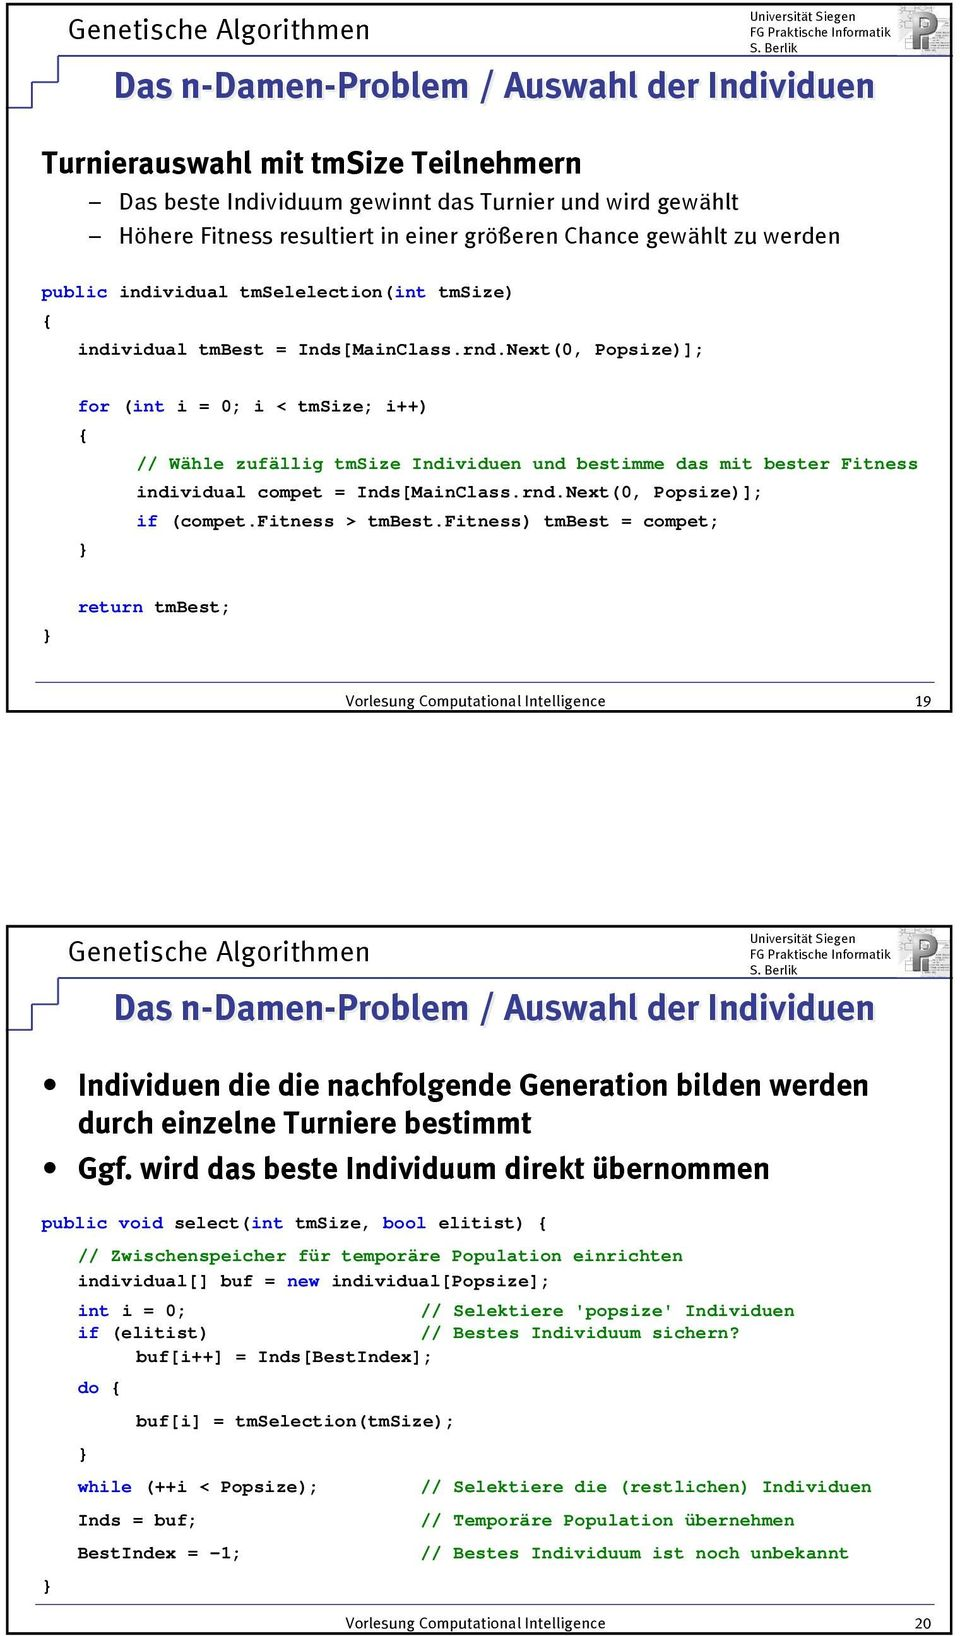 Next(0, Popsize)]; for (int i = 0; i < tmsize; i++) // Wähle zufällig tmsize Individuen und bestimme das mit bester Fitness individual compet = Inds[MainClass.rnd.Next(0, Popsize)]; if (compet.